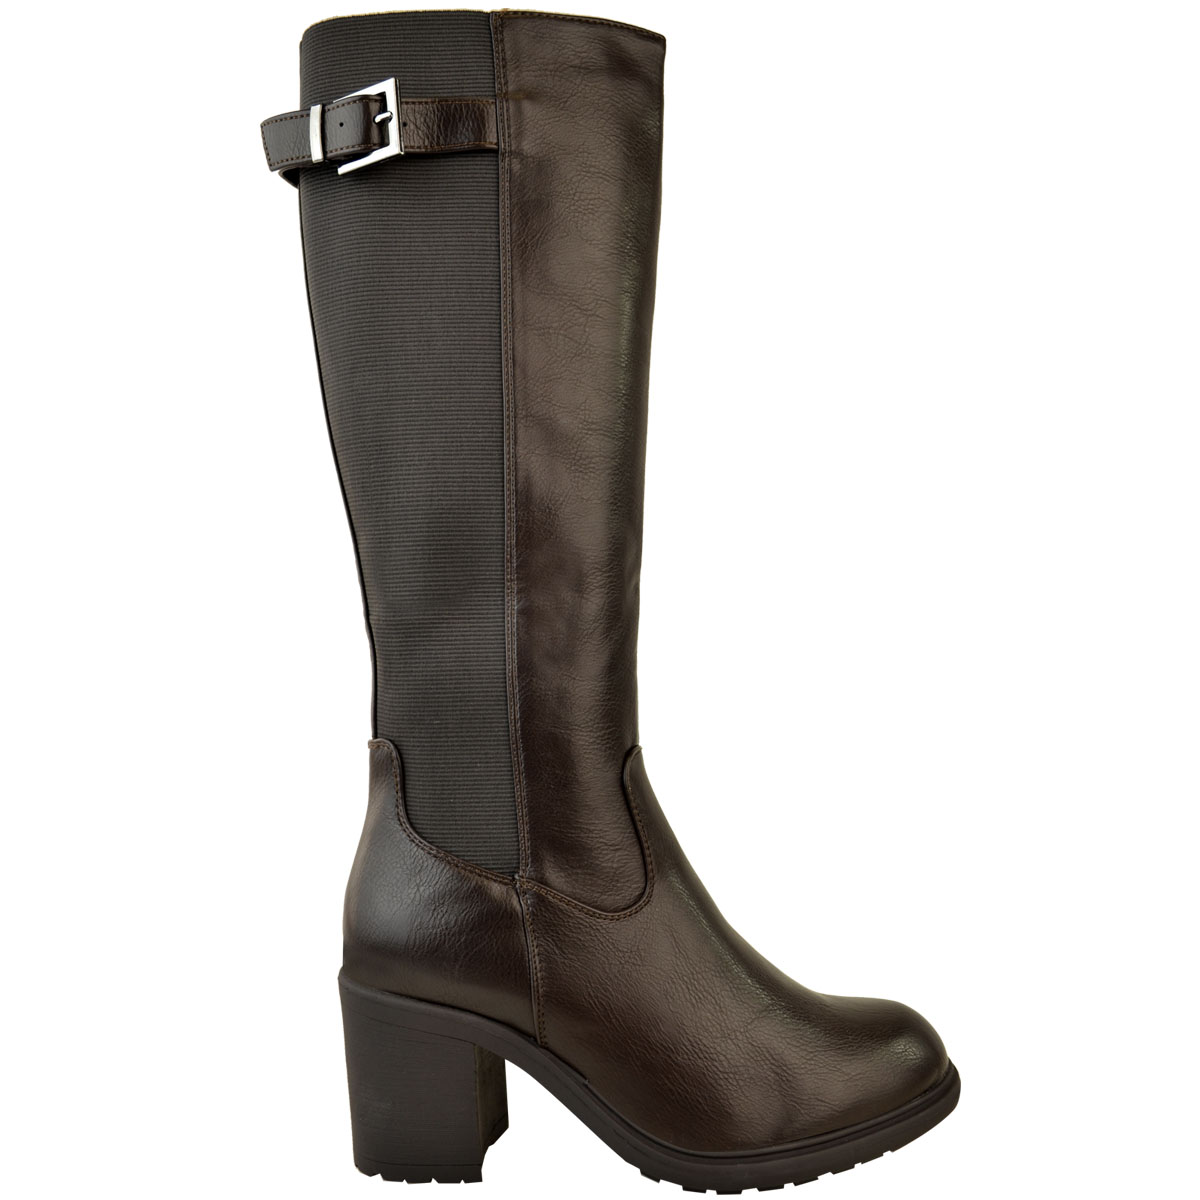 Womens-Ladies-Calf-High-Boots-Riding-Stretch-Wide-Leg-Low-Block-Heel-Winter-Size thumbnail 9